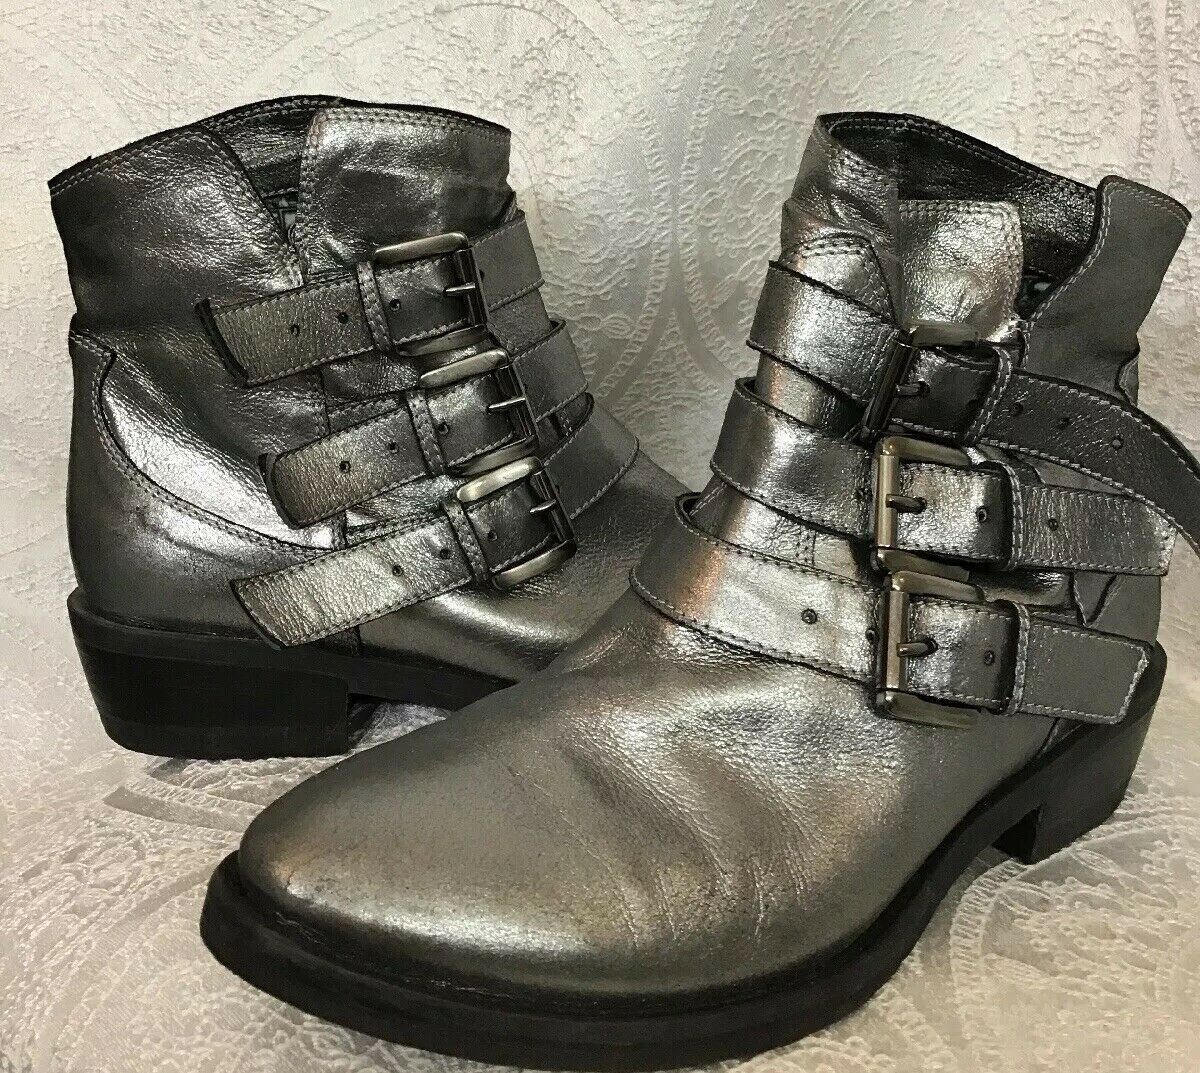 Crown Project Quality Ankle boot Silver Metallic  Leather 3 buckles size 37